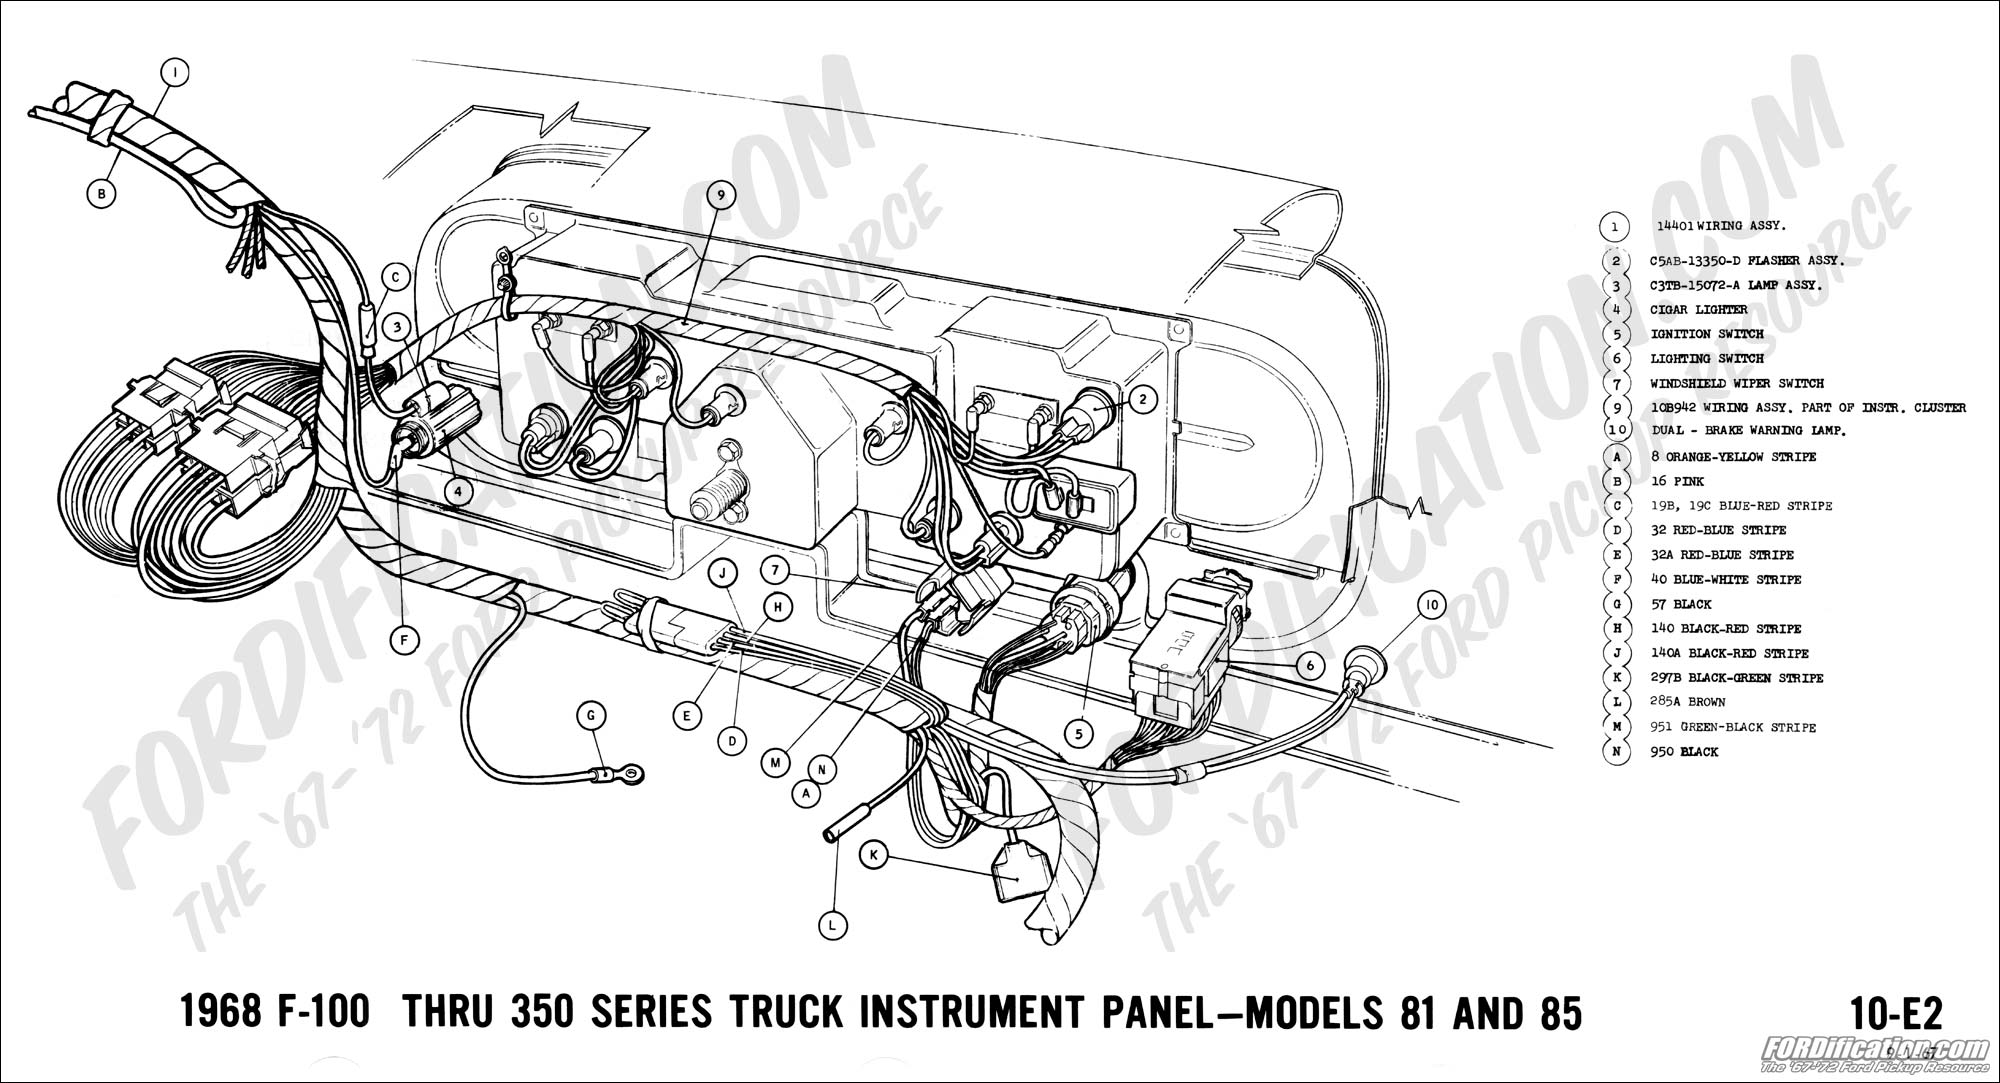 1968 ford f750 wiring diagram house wiring diagram symbols u2022 rh maxturner co